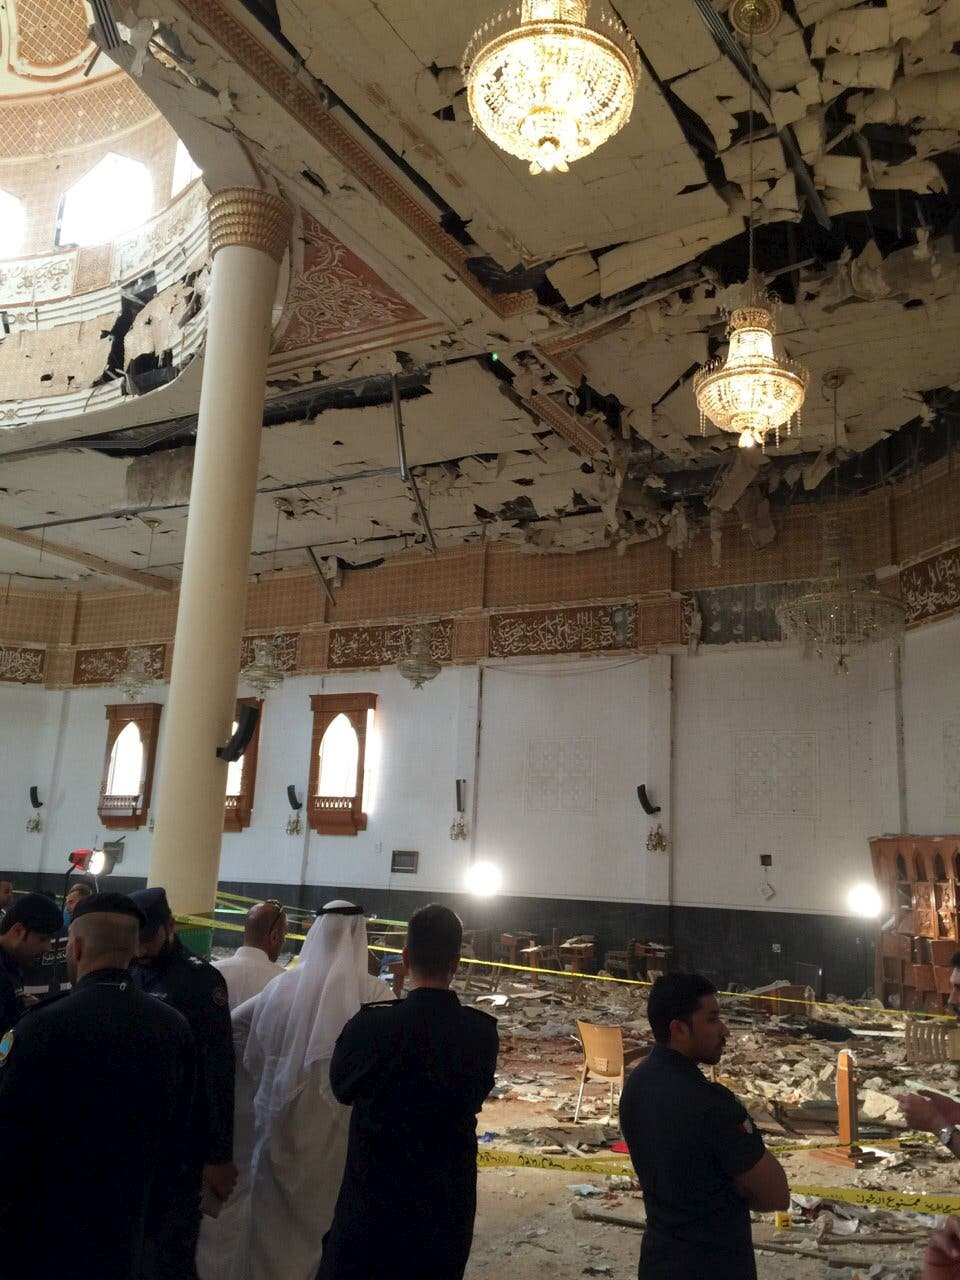 Police inspect the Imam Sadiq Mosque after a bomb explosion, in the Al Sawaber area of Kuwait City June 26, 2015. (Reuters)